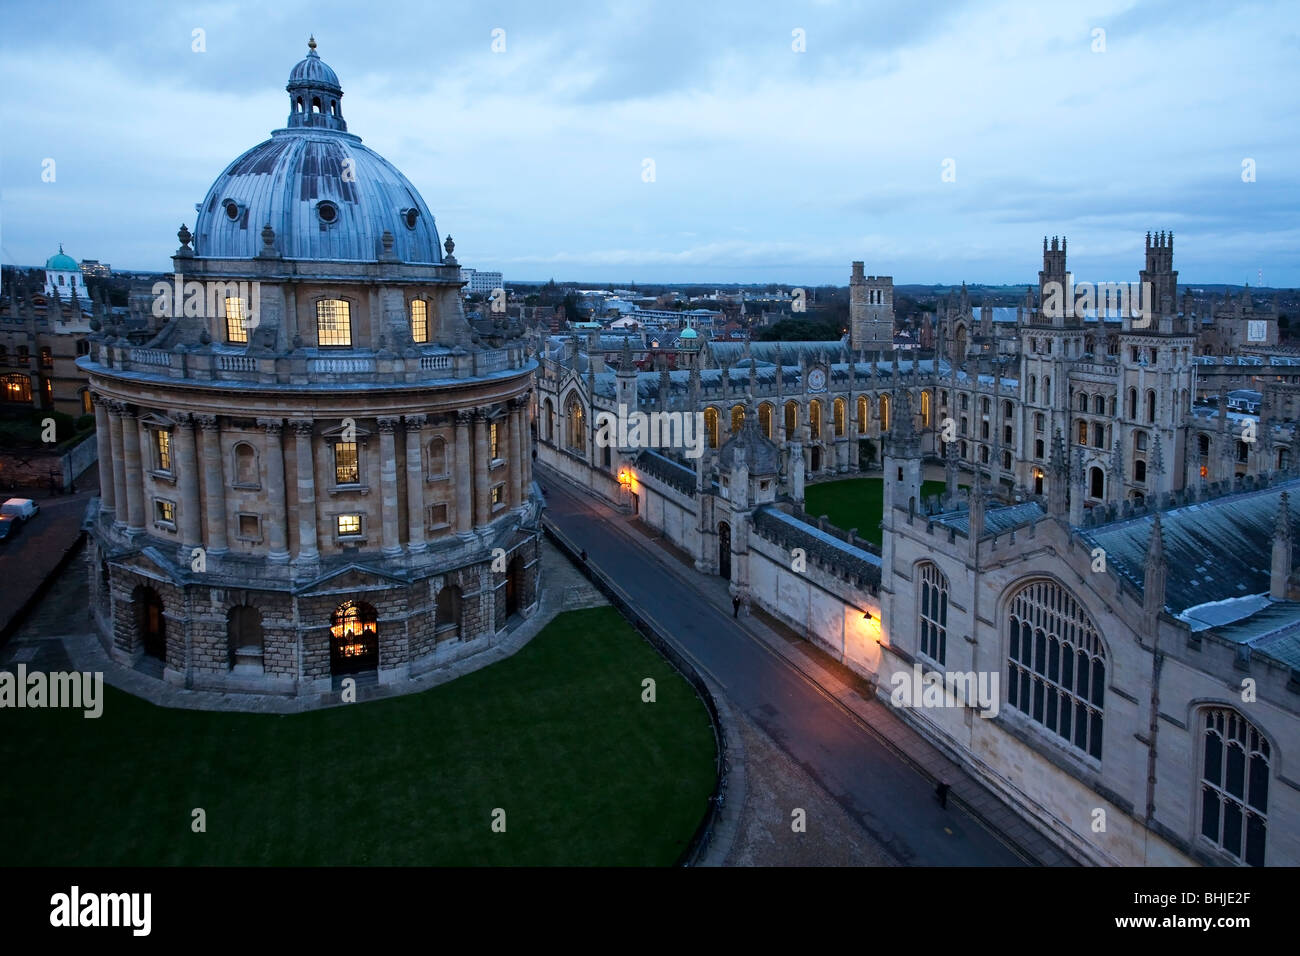 View of All Souls College and Radcliffe Square from St Mary's Church Steeple, Oxford, Uk - Stock Image